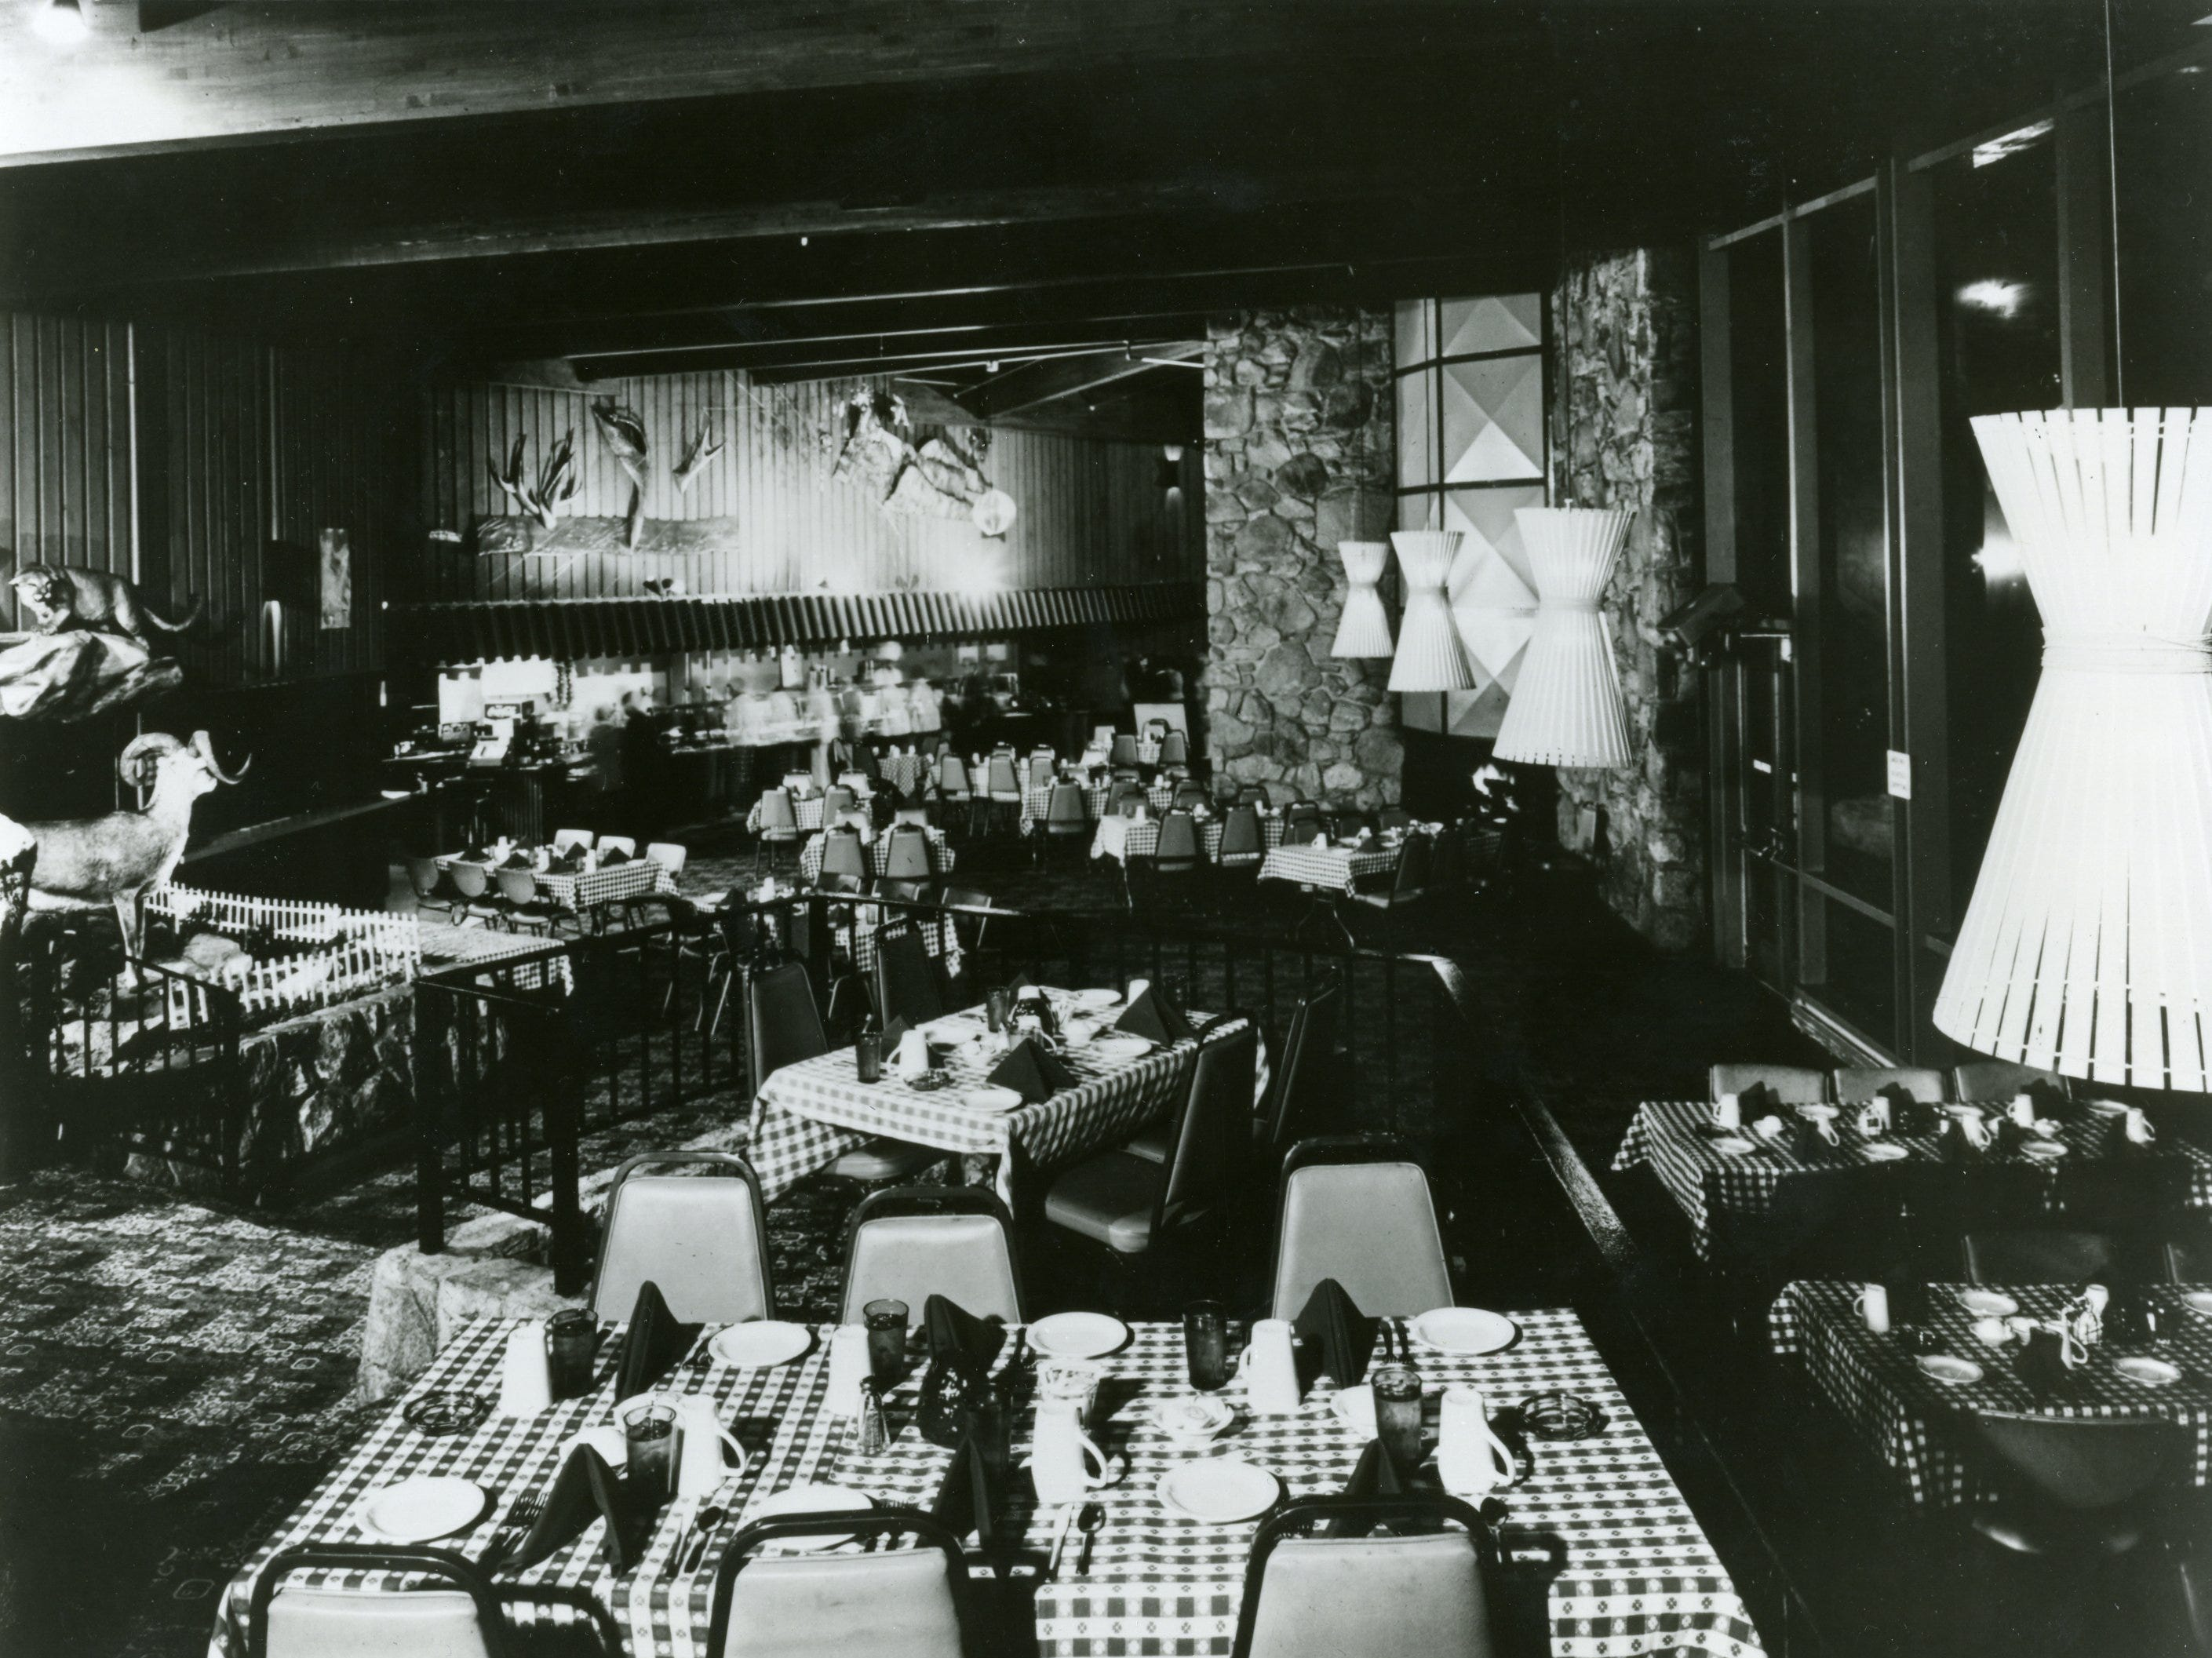 This undated photo shows the original dining room at the Tram Mountain station.